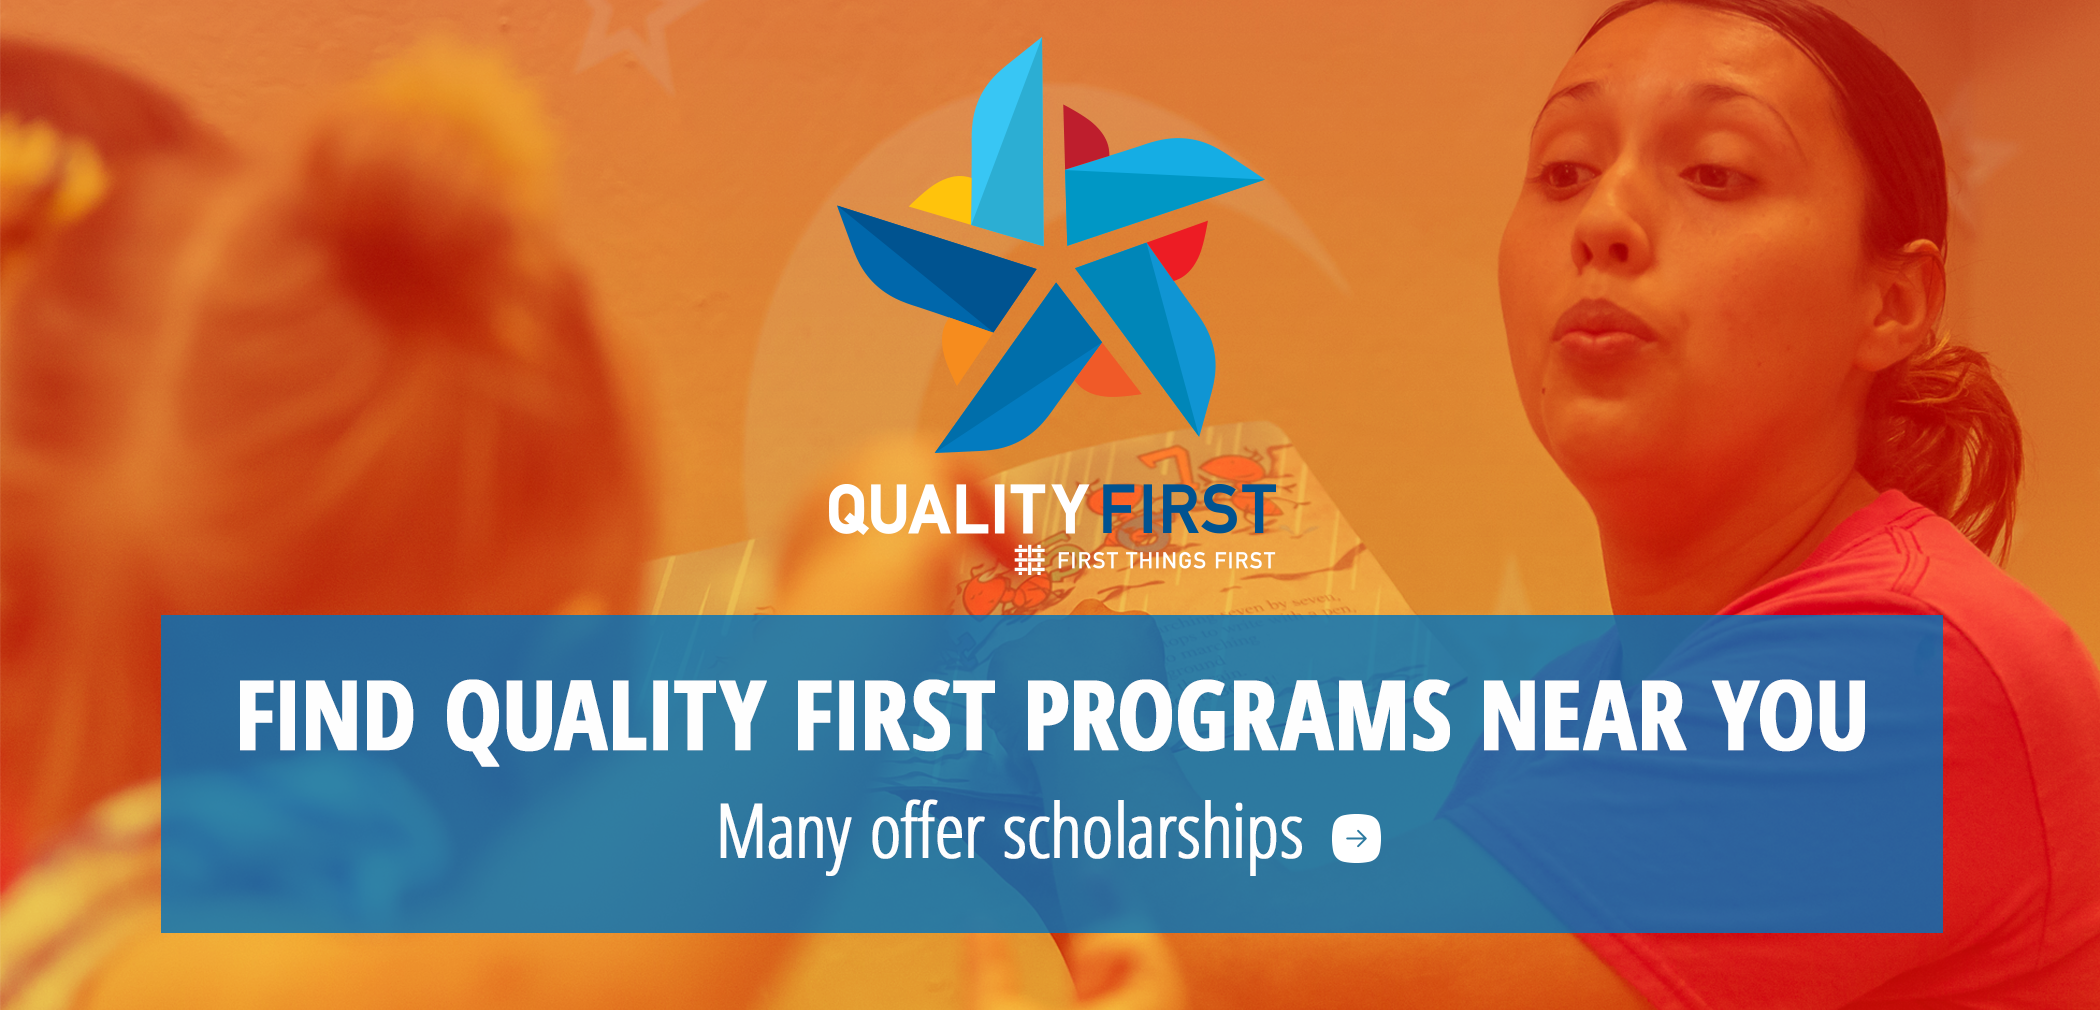 Find Quality First Programs Near You